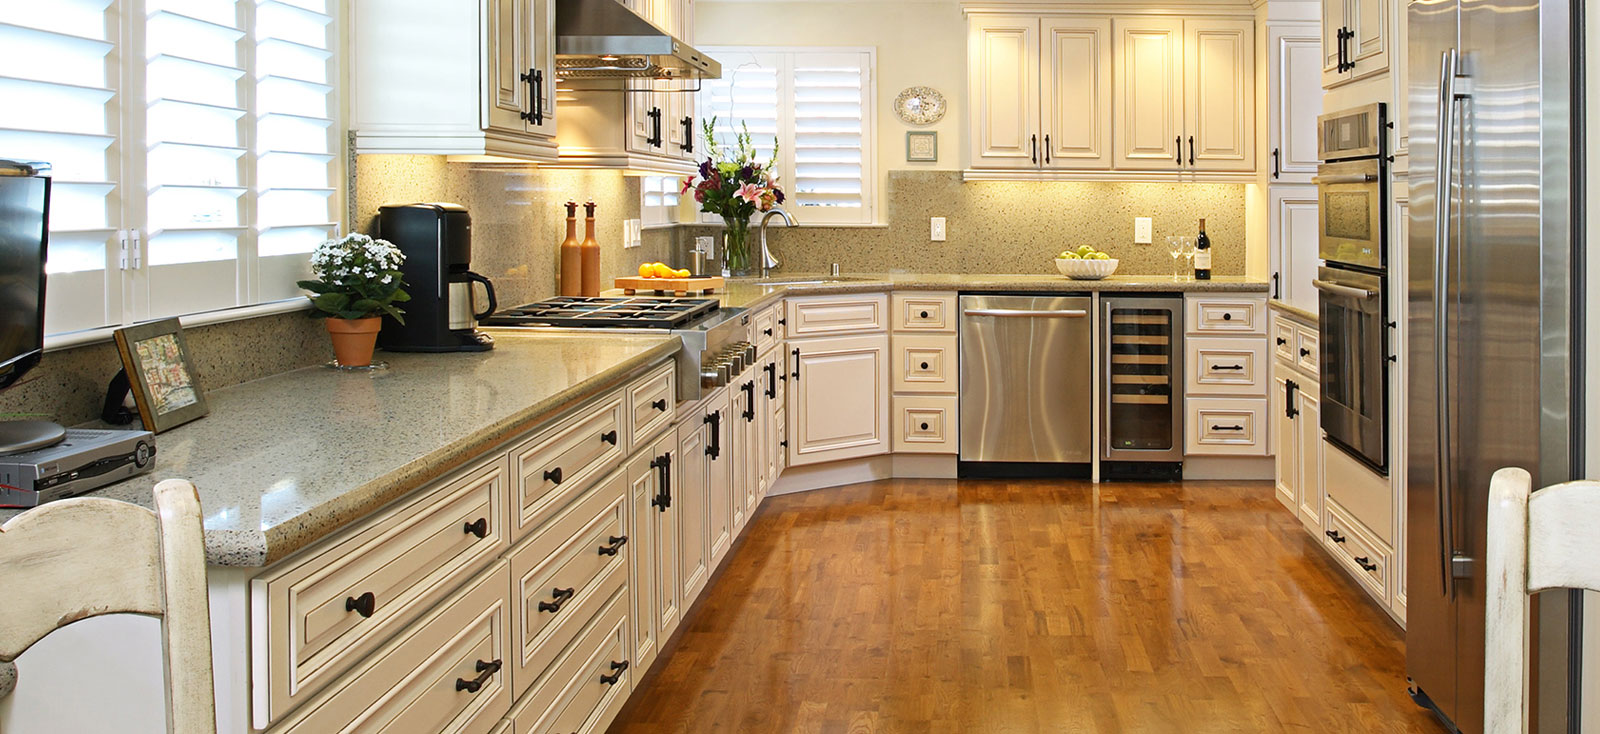 Kitchen Design Center - Bathroom remodeling cleveland ohio